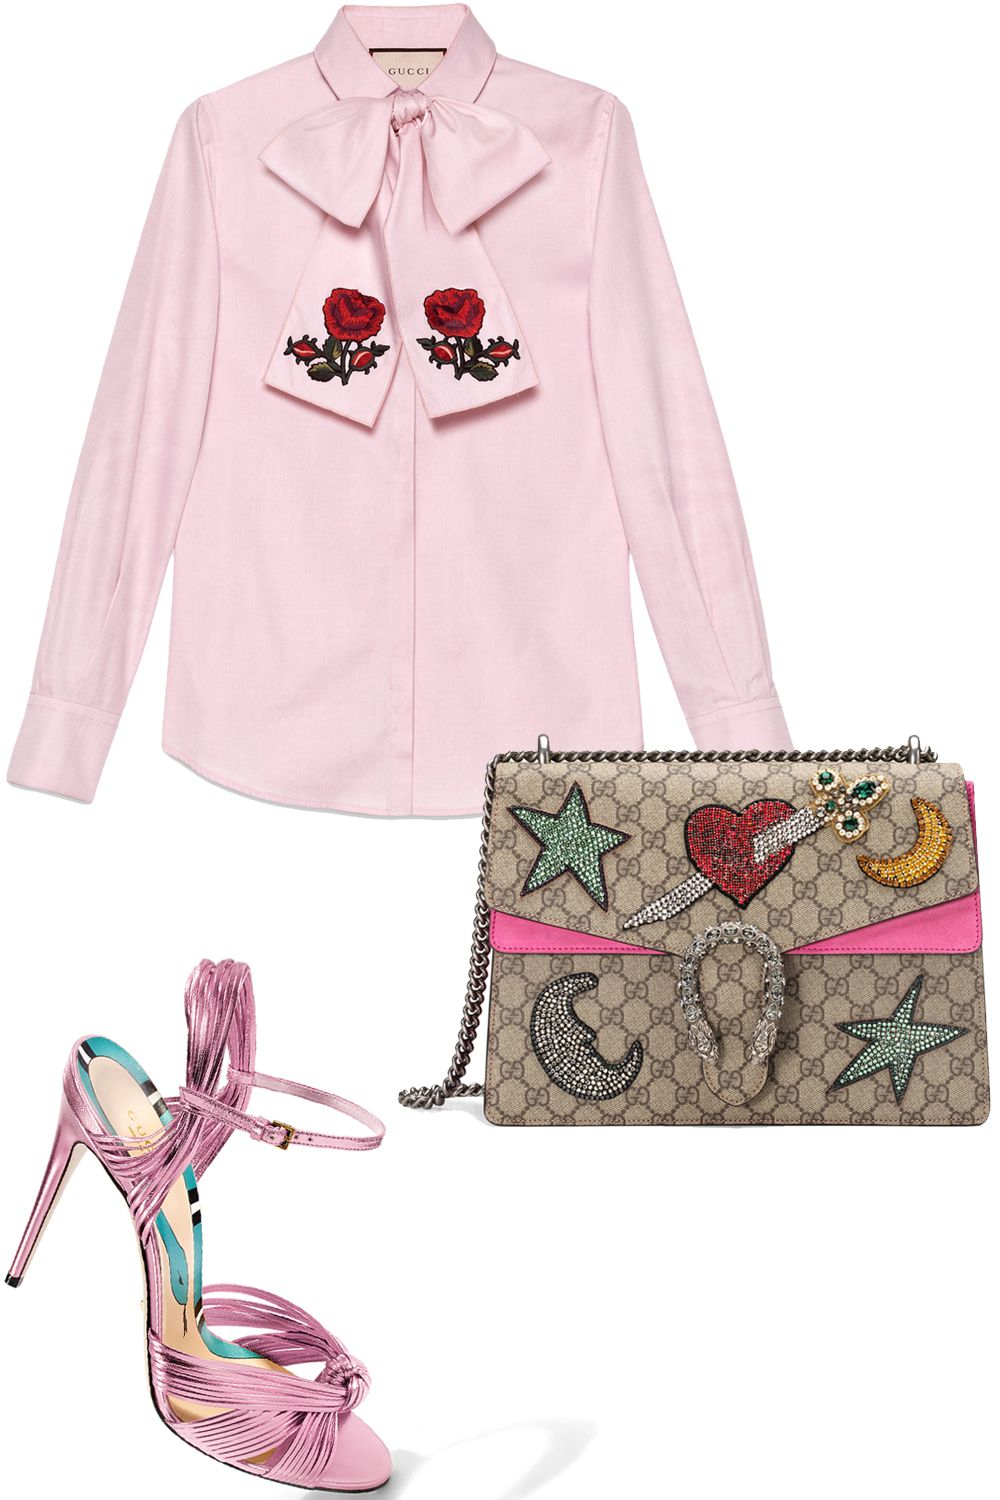 """<p><em data-redactor-tag=""""em"""" data-verified=""""redactor"""">Gucci shirt, $1,110, <strong data-redactor-tag=""""strong"""" data-verified=""""redactor""""><a href=""""https://shop.harpersbazaar.com/g/gucci/washed-oxford-shirt-with-scarf-9729.html"""" target=""""_blank"""" data-tracking-id=""""recirc-text-link"""">shopBAZAAR.com</a></strong>;Gucci sandal, $795, <strong data-redactor-tag=""""strong"""" data-verified=""""redactor""""><a href=""""https://shop.harpersbazaar.com/g/gucci/allies-high-sandal-9825.html"""" target=""""_blank"""" data-tracking-id=""""recirc-text-link"""">shopBAZAAR.com;</a></strong></em><span class=""""redactor-invisible-space""""><em data-redactor-tag=""""em"""" data-verified=""""redactor"""">Gucci bag, $3,600, <strong data-redactor-tag=""""strong"""" data-verified=""""redactor""""><a href=""""https://shop.harpersbazaar.com/g/gucci/marmont-moon-and-sword-bag-9829.html"""" target=""""_blank"""" data-tracking-id=""""recirc-text-link"""">shopBAZAAR.com</a></strong>.</em></span></p>"""